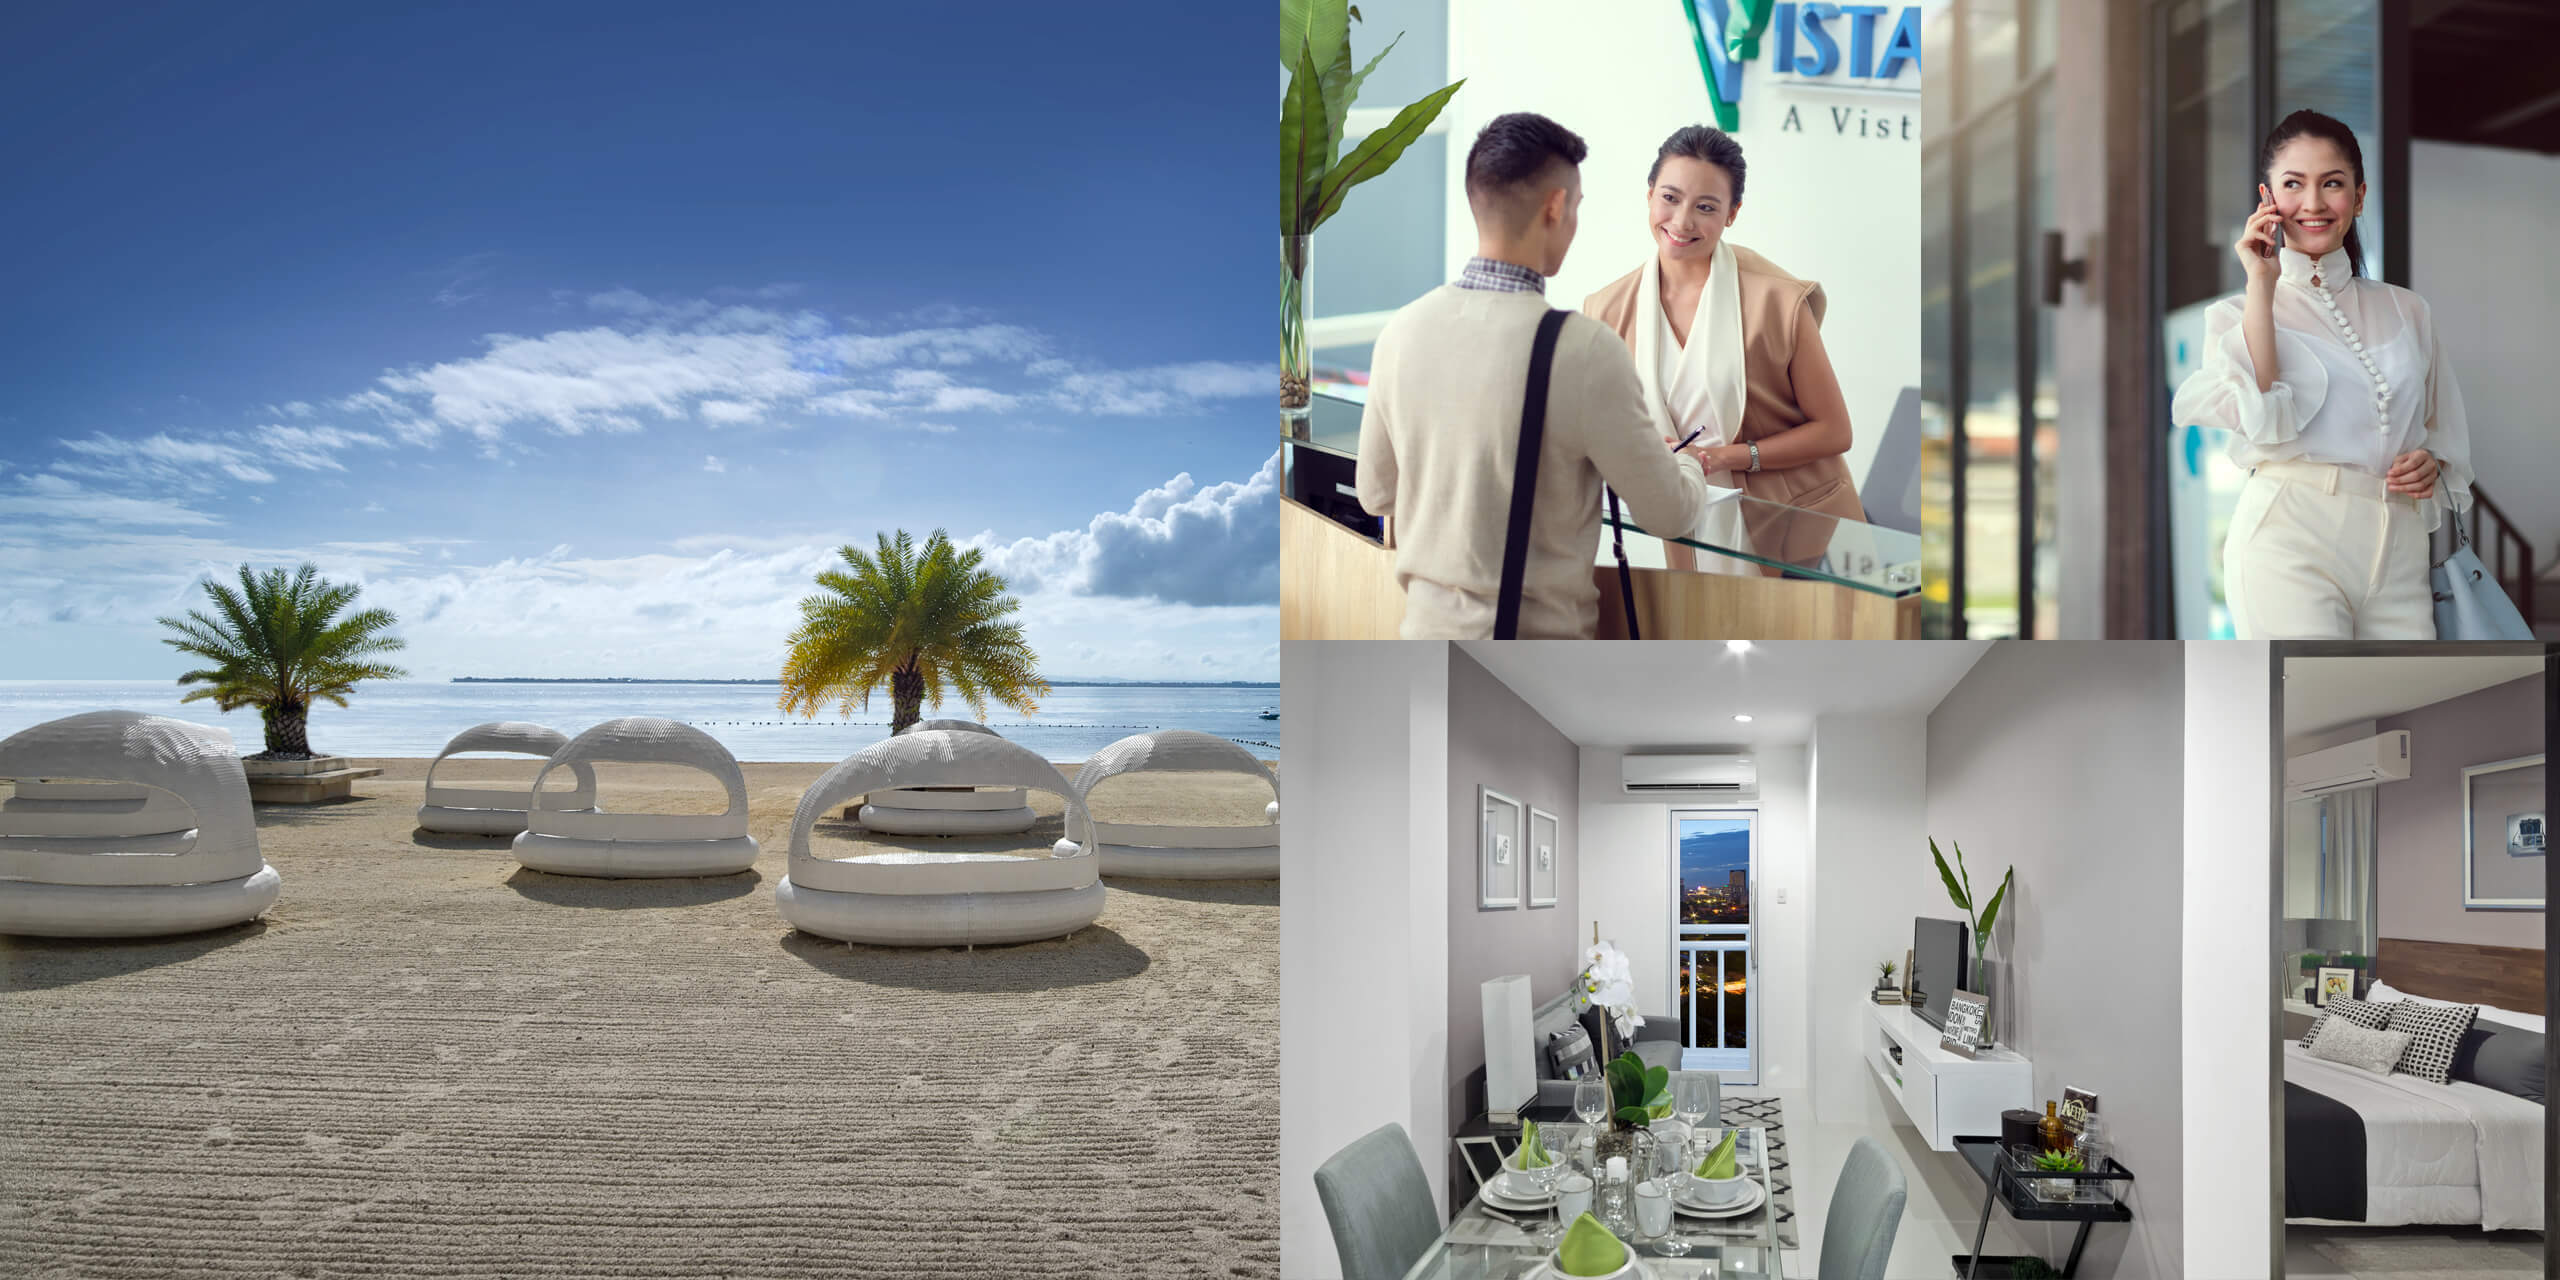 Vista Land Residences Vista Suarez Cebu gallery